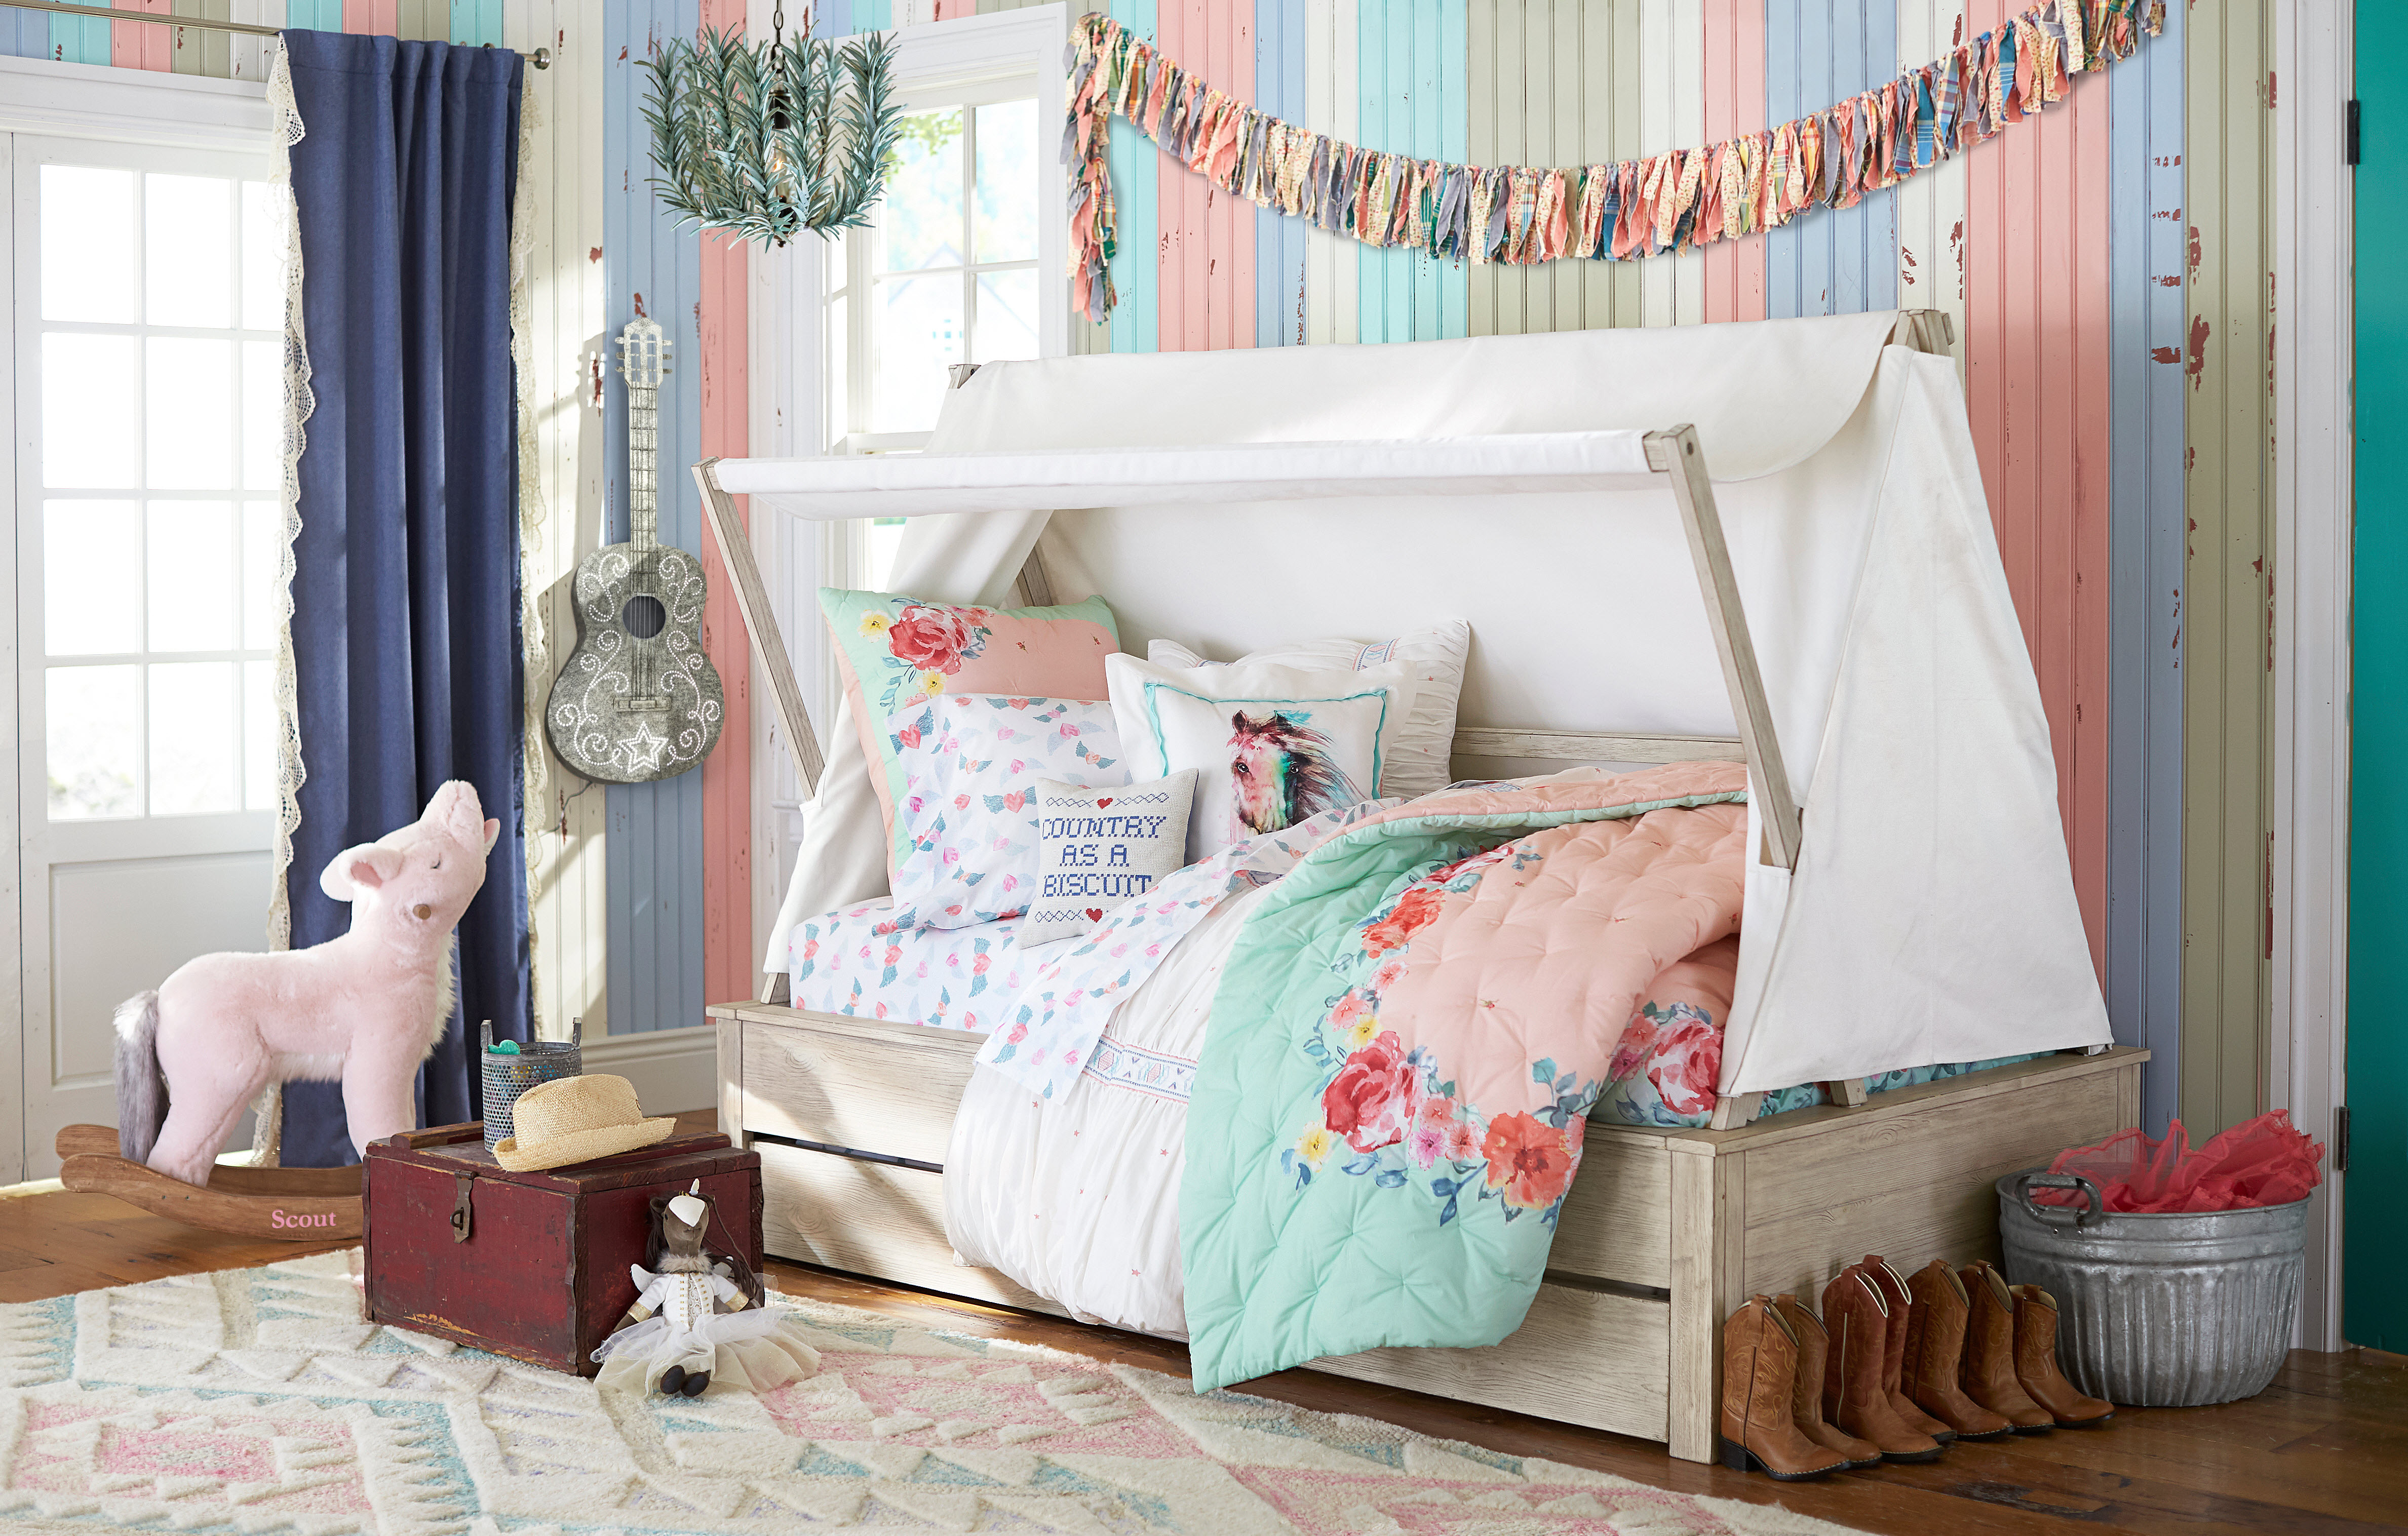 POTTERY BARN KIDS LAUNCHES EXCLUSIVE COLLECTION WITH TEXAS SISTERS